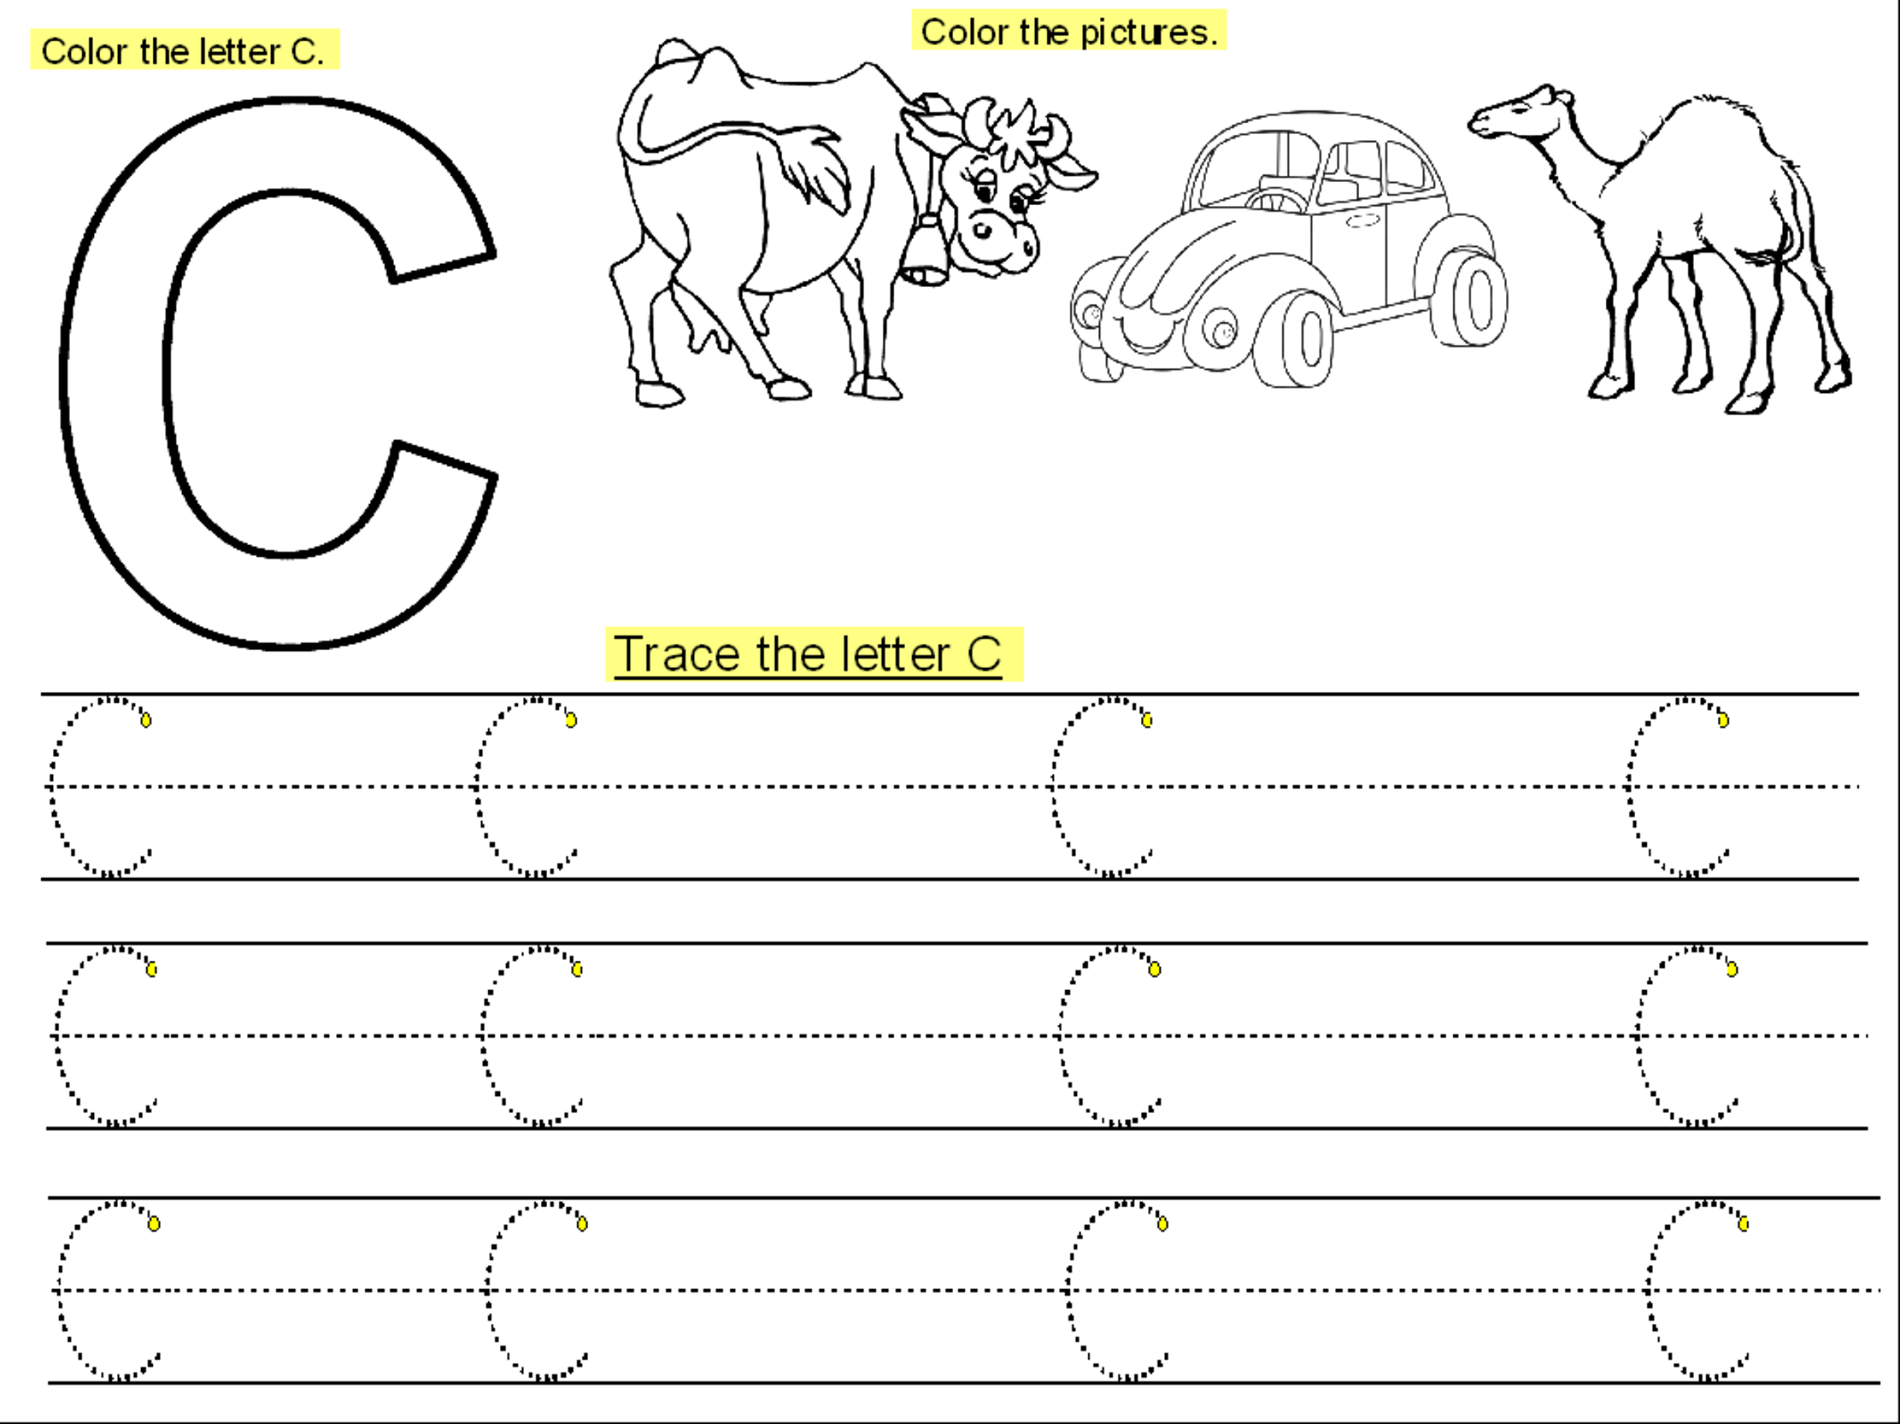 Trace the Letter C Worksheets | Activity Shelter | Kids Worksheets ...